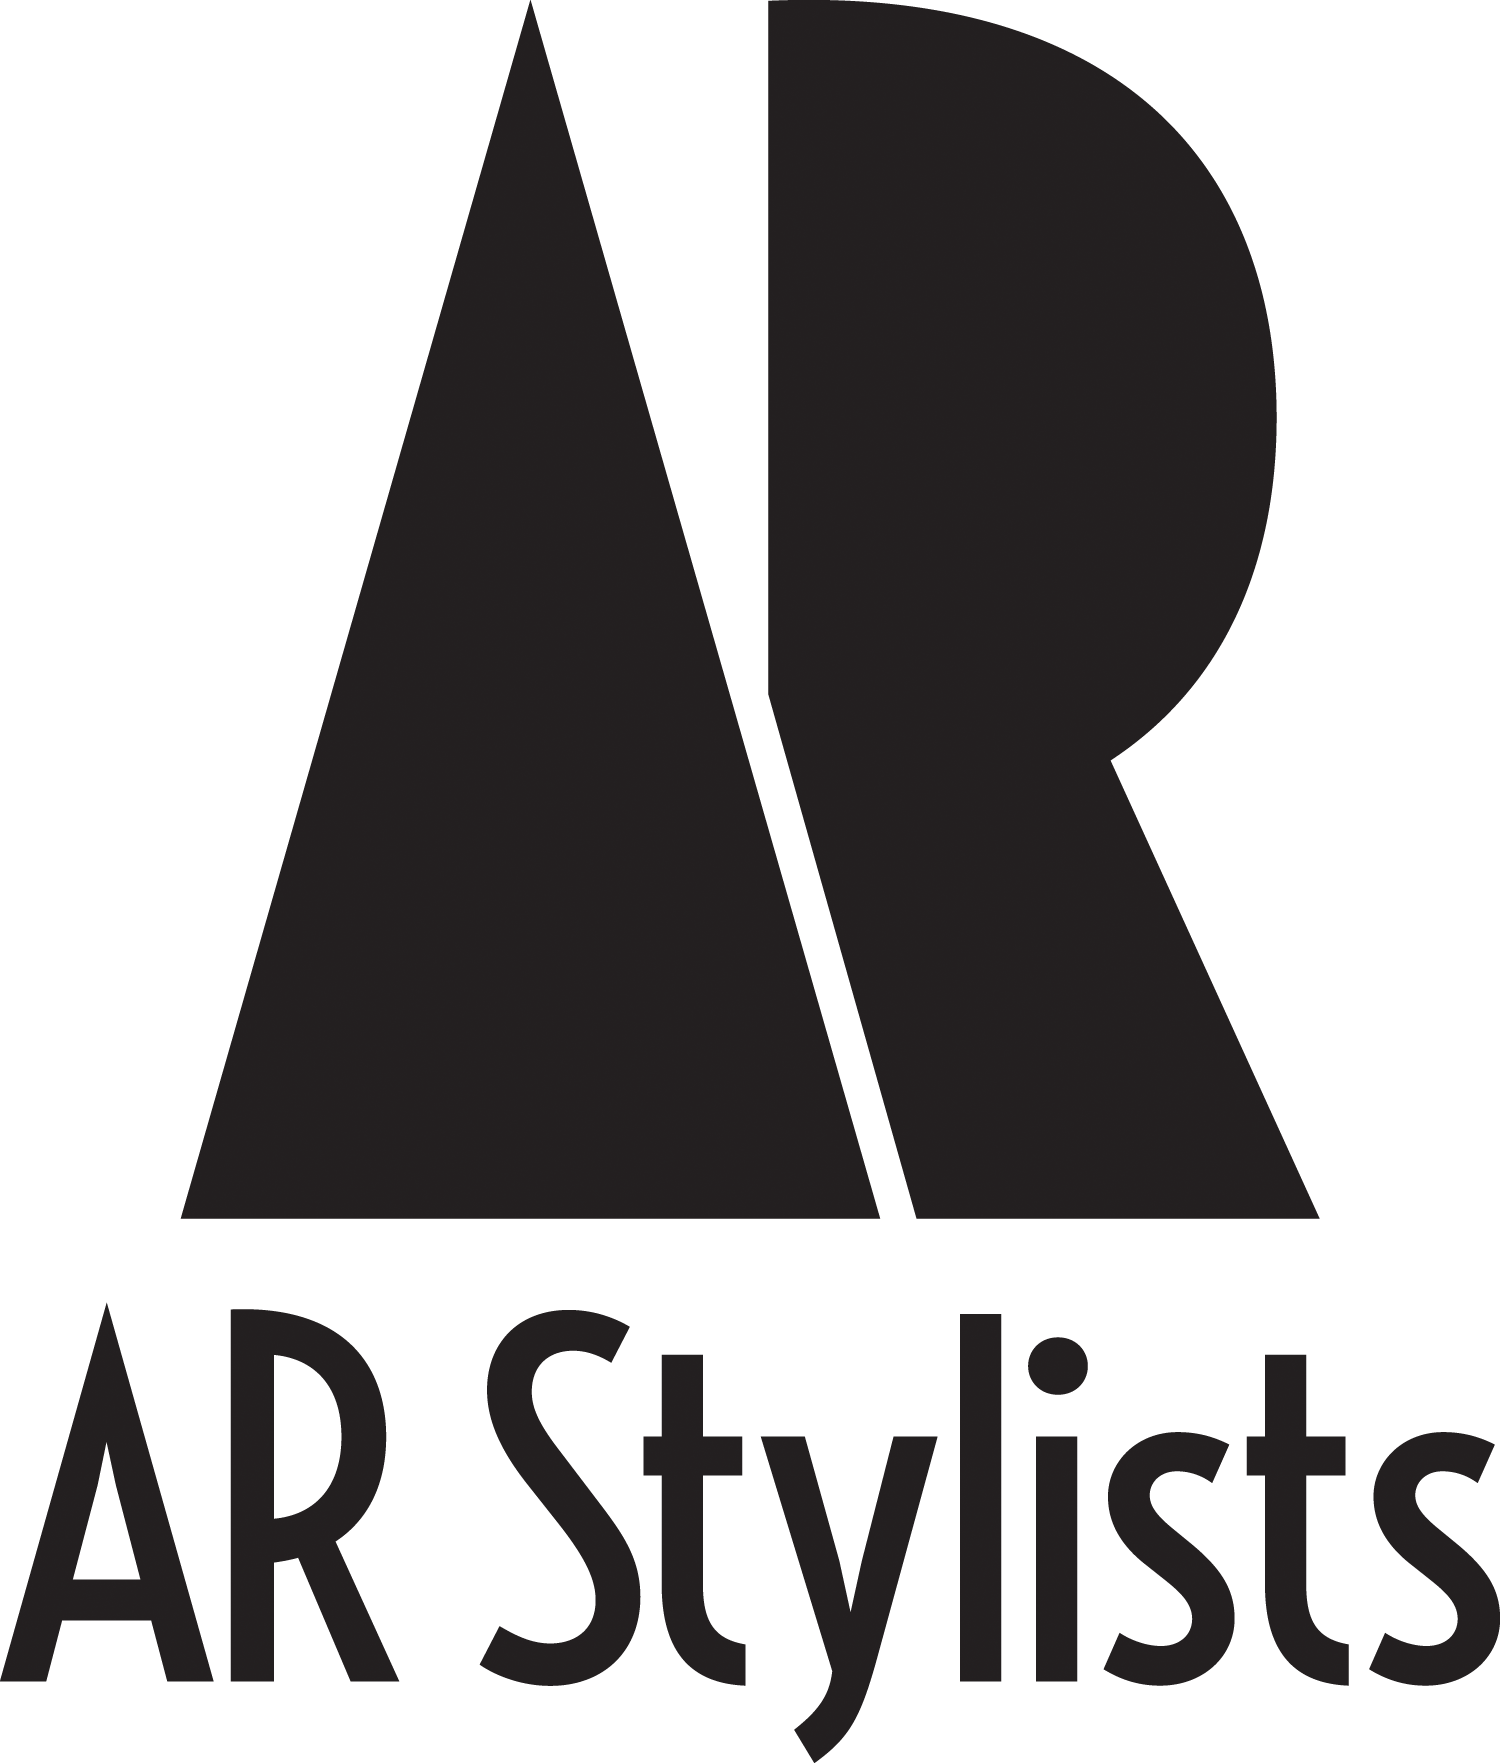 AR Stylists